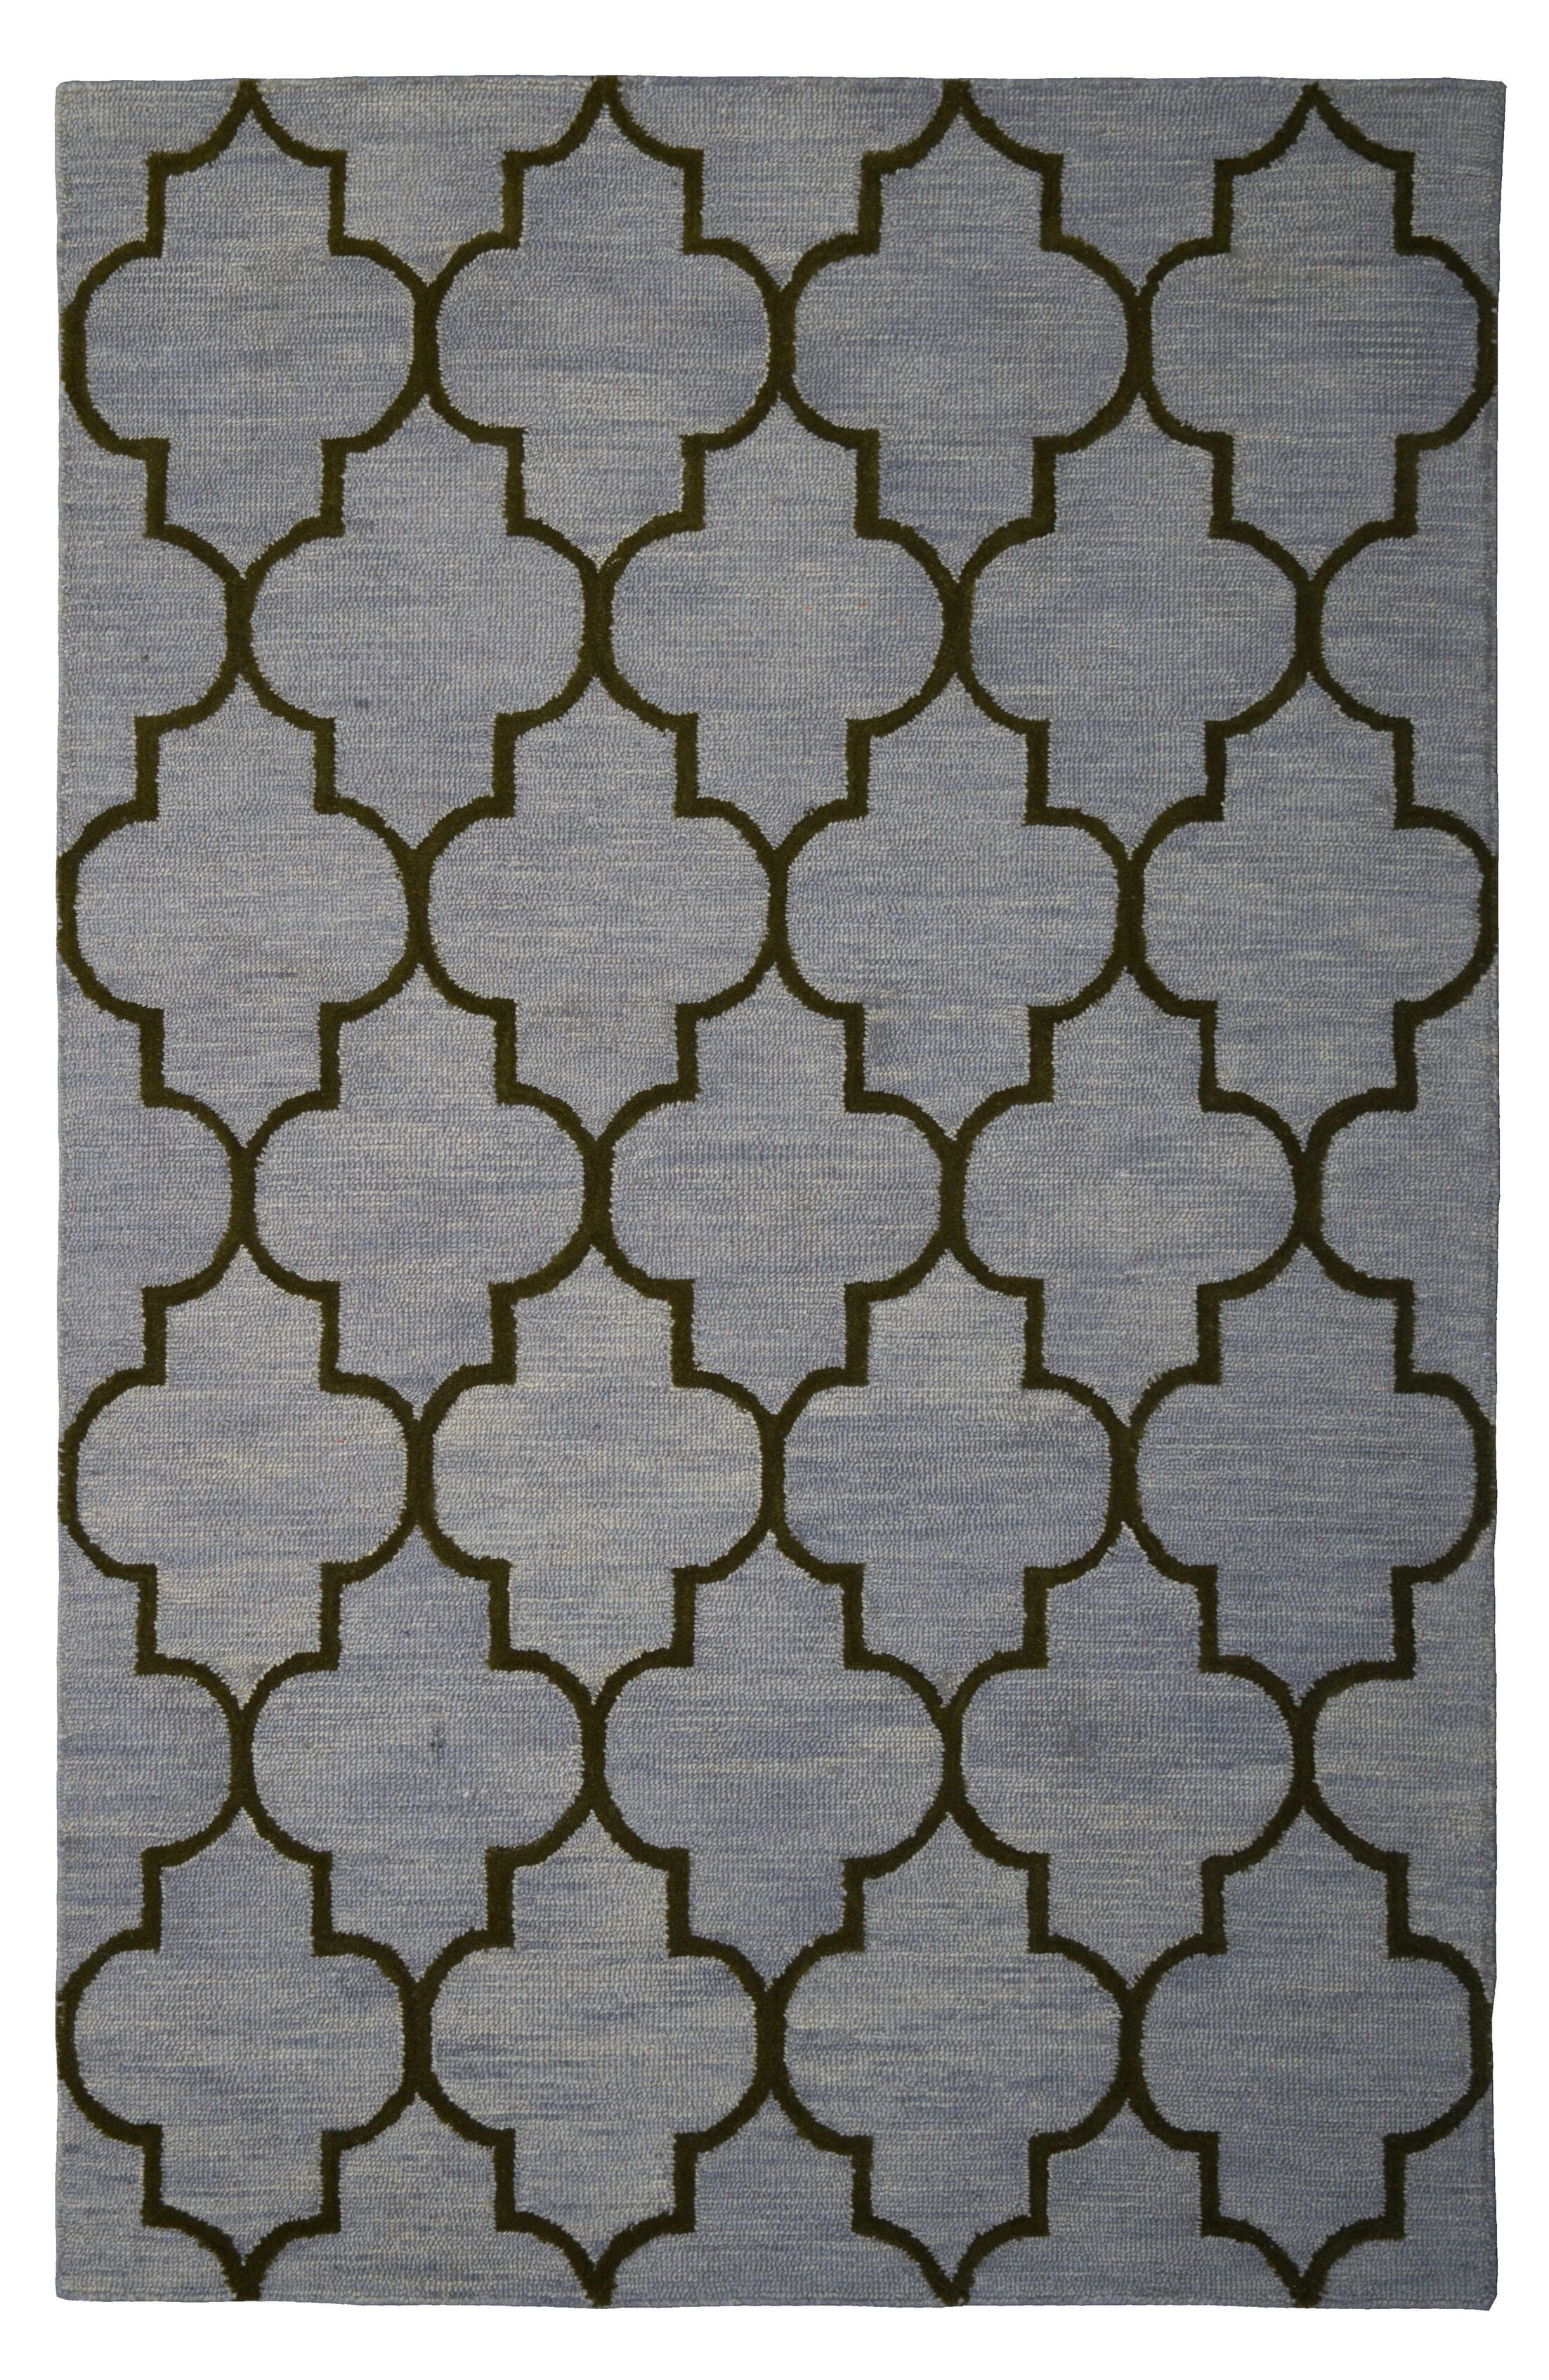 Wool Hand-Tufted Gray/Green Area Rug Rug Size: 5' x 8'